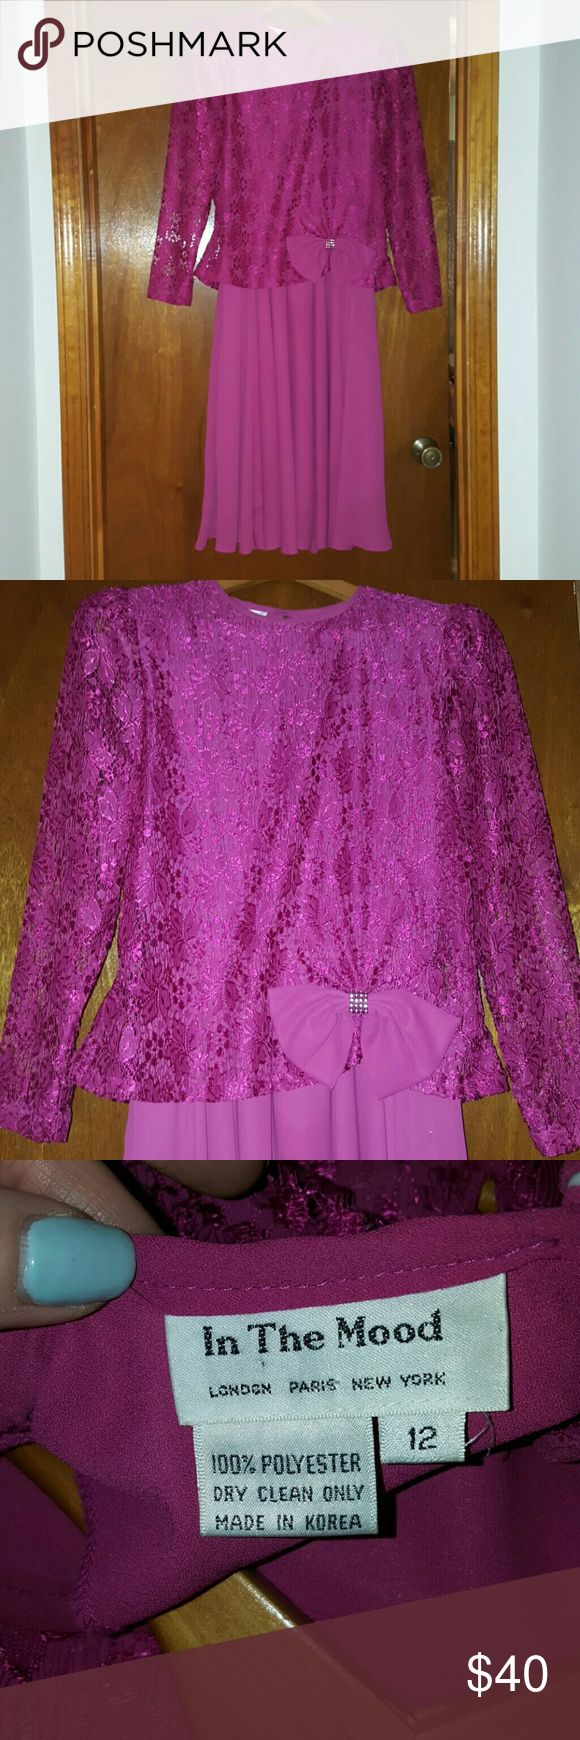 VINTAGE RUNWAY MOTHER OF THE BRIDE DRESS!!! Beautiful Fuschia Pink dress with lacey overlay on the top half of the dress. Decorated at the waist with a bow studded in rhinestones! Purchased from a runway show in NYC!!! In The Mood Dresses Wedding